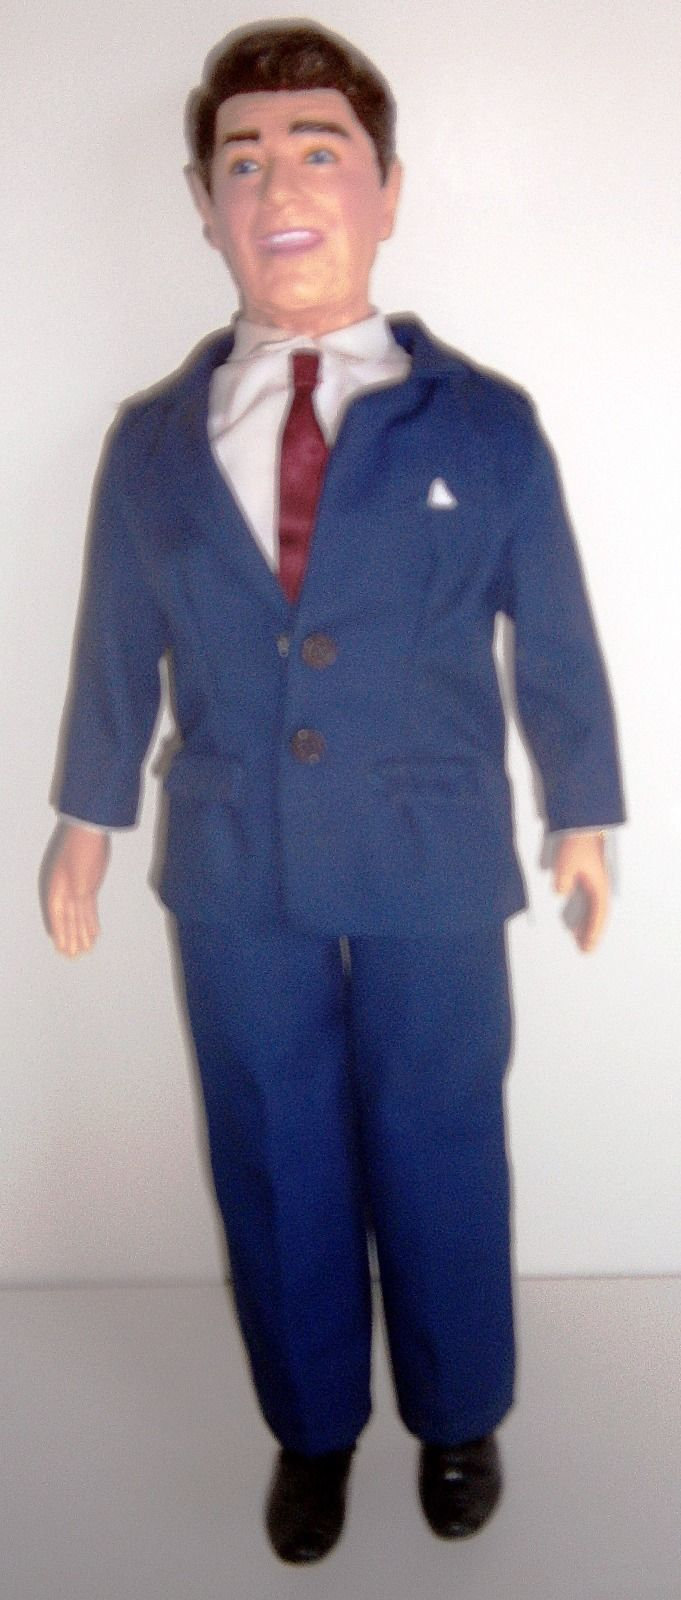 "Primary image for President Ronald Reagan Doll 17"" 1987 Special Ed. NEW"